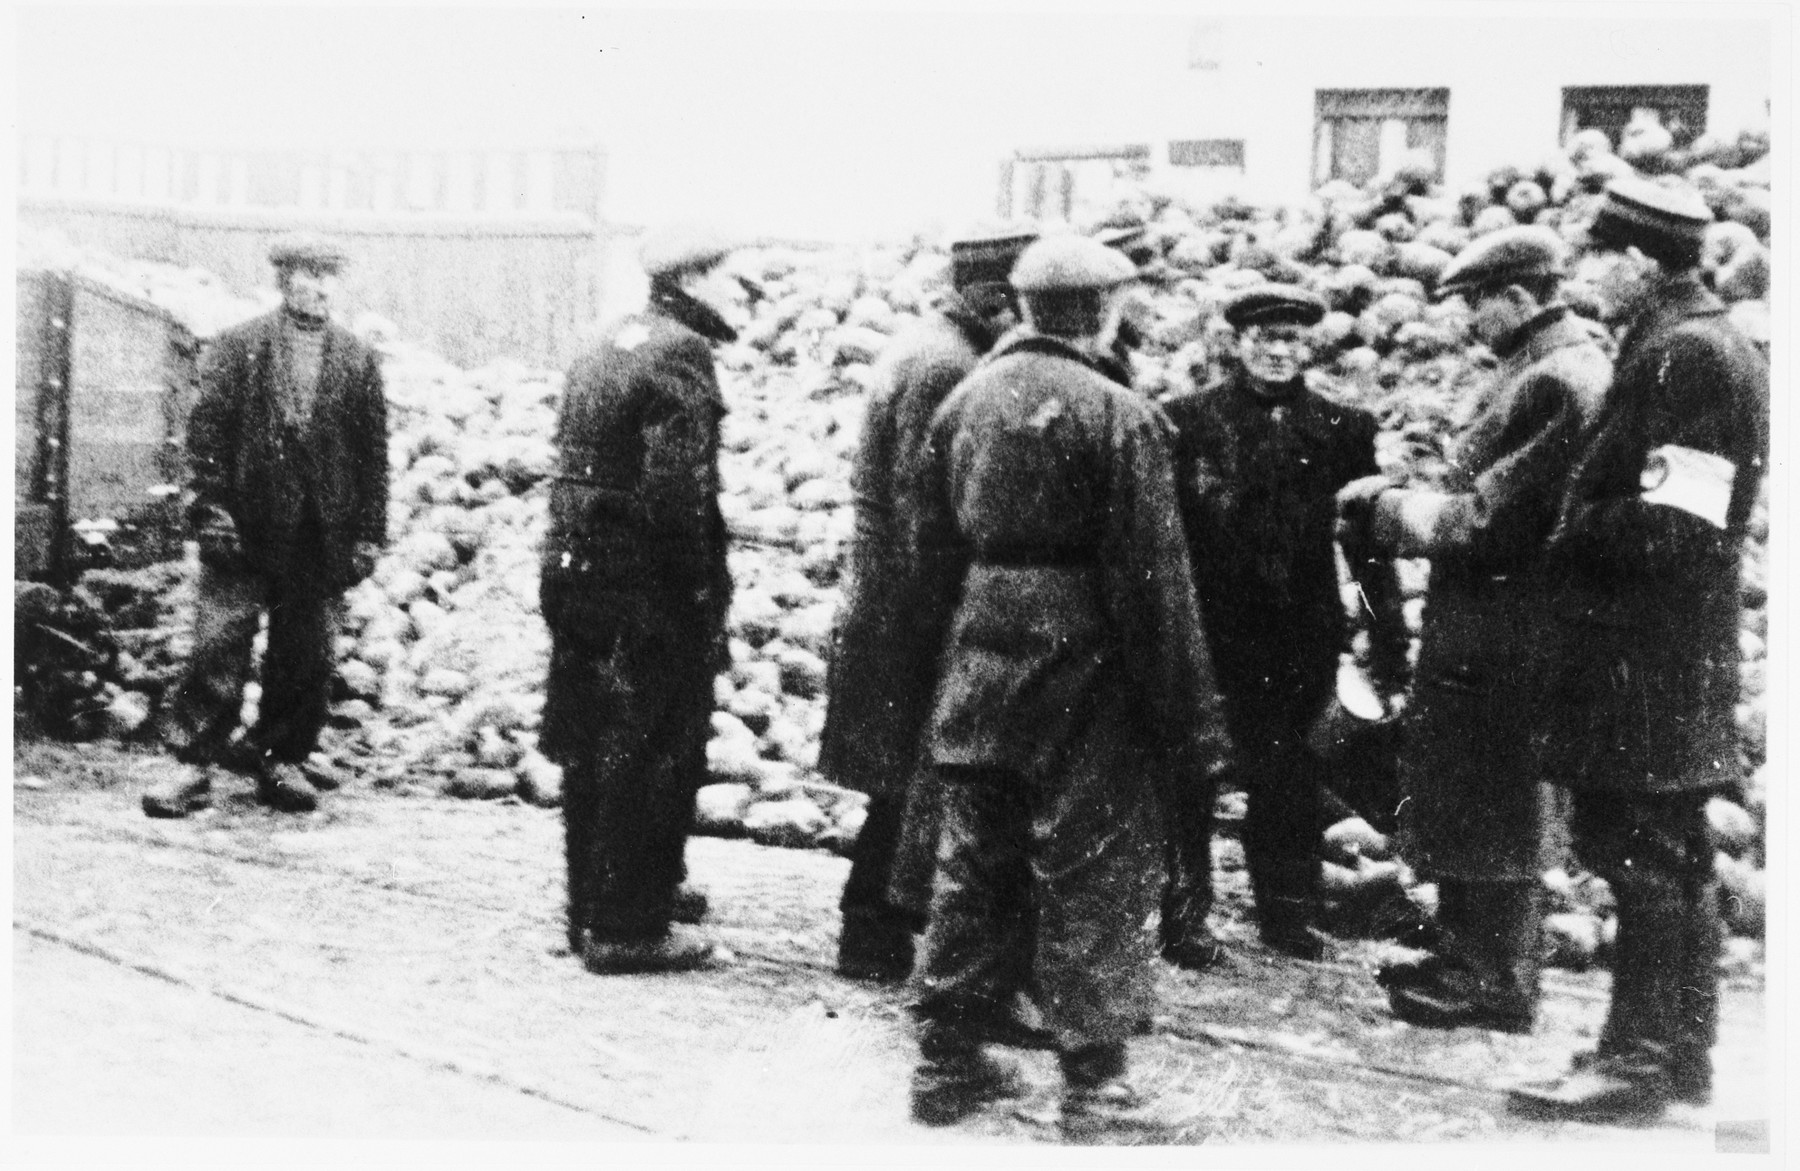 Jewish police stand with a group of laborers in front of a large pile [of food?] in the Lodz ghetto.